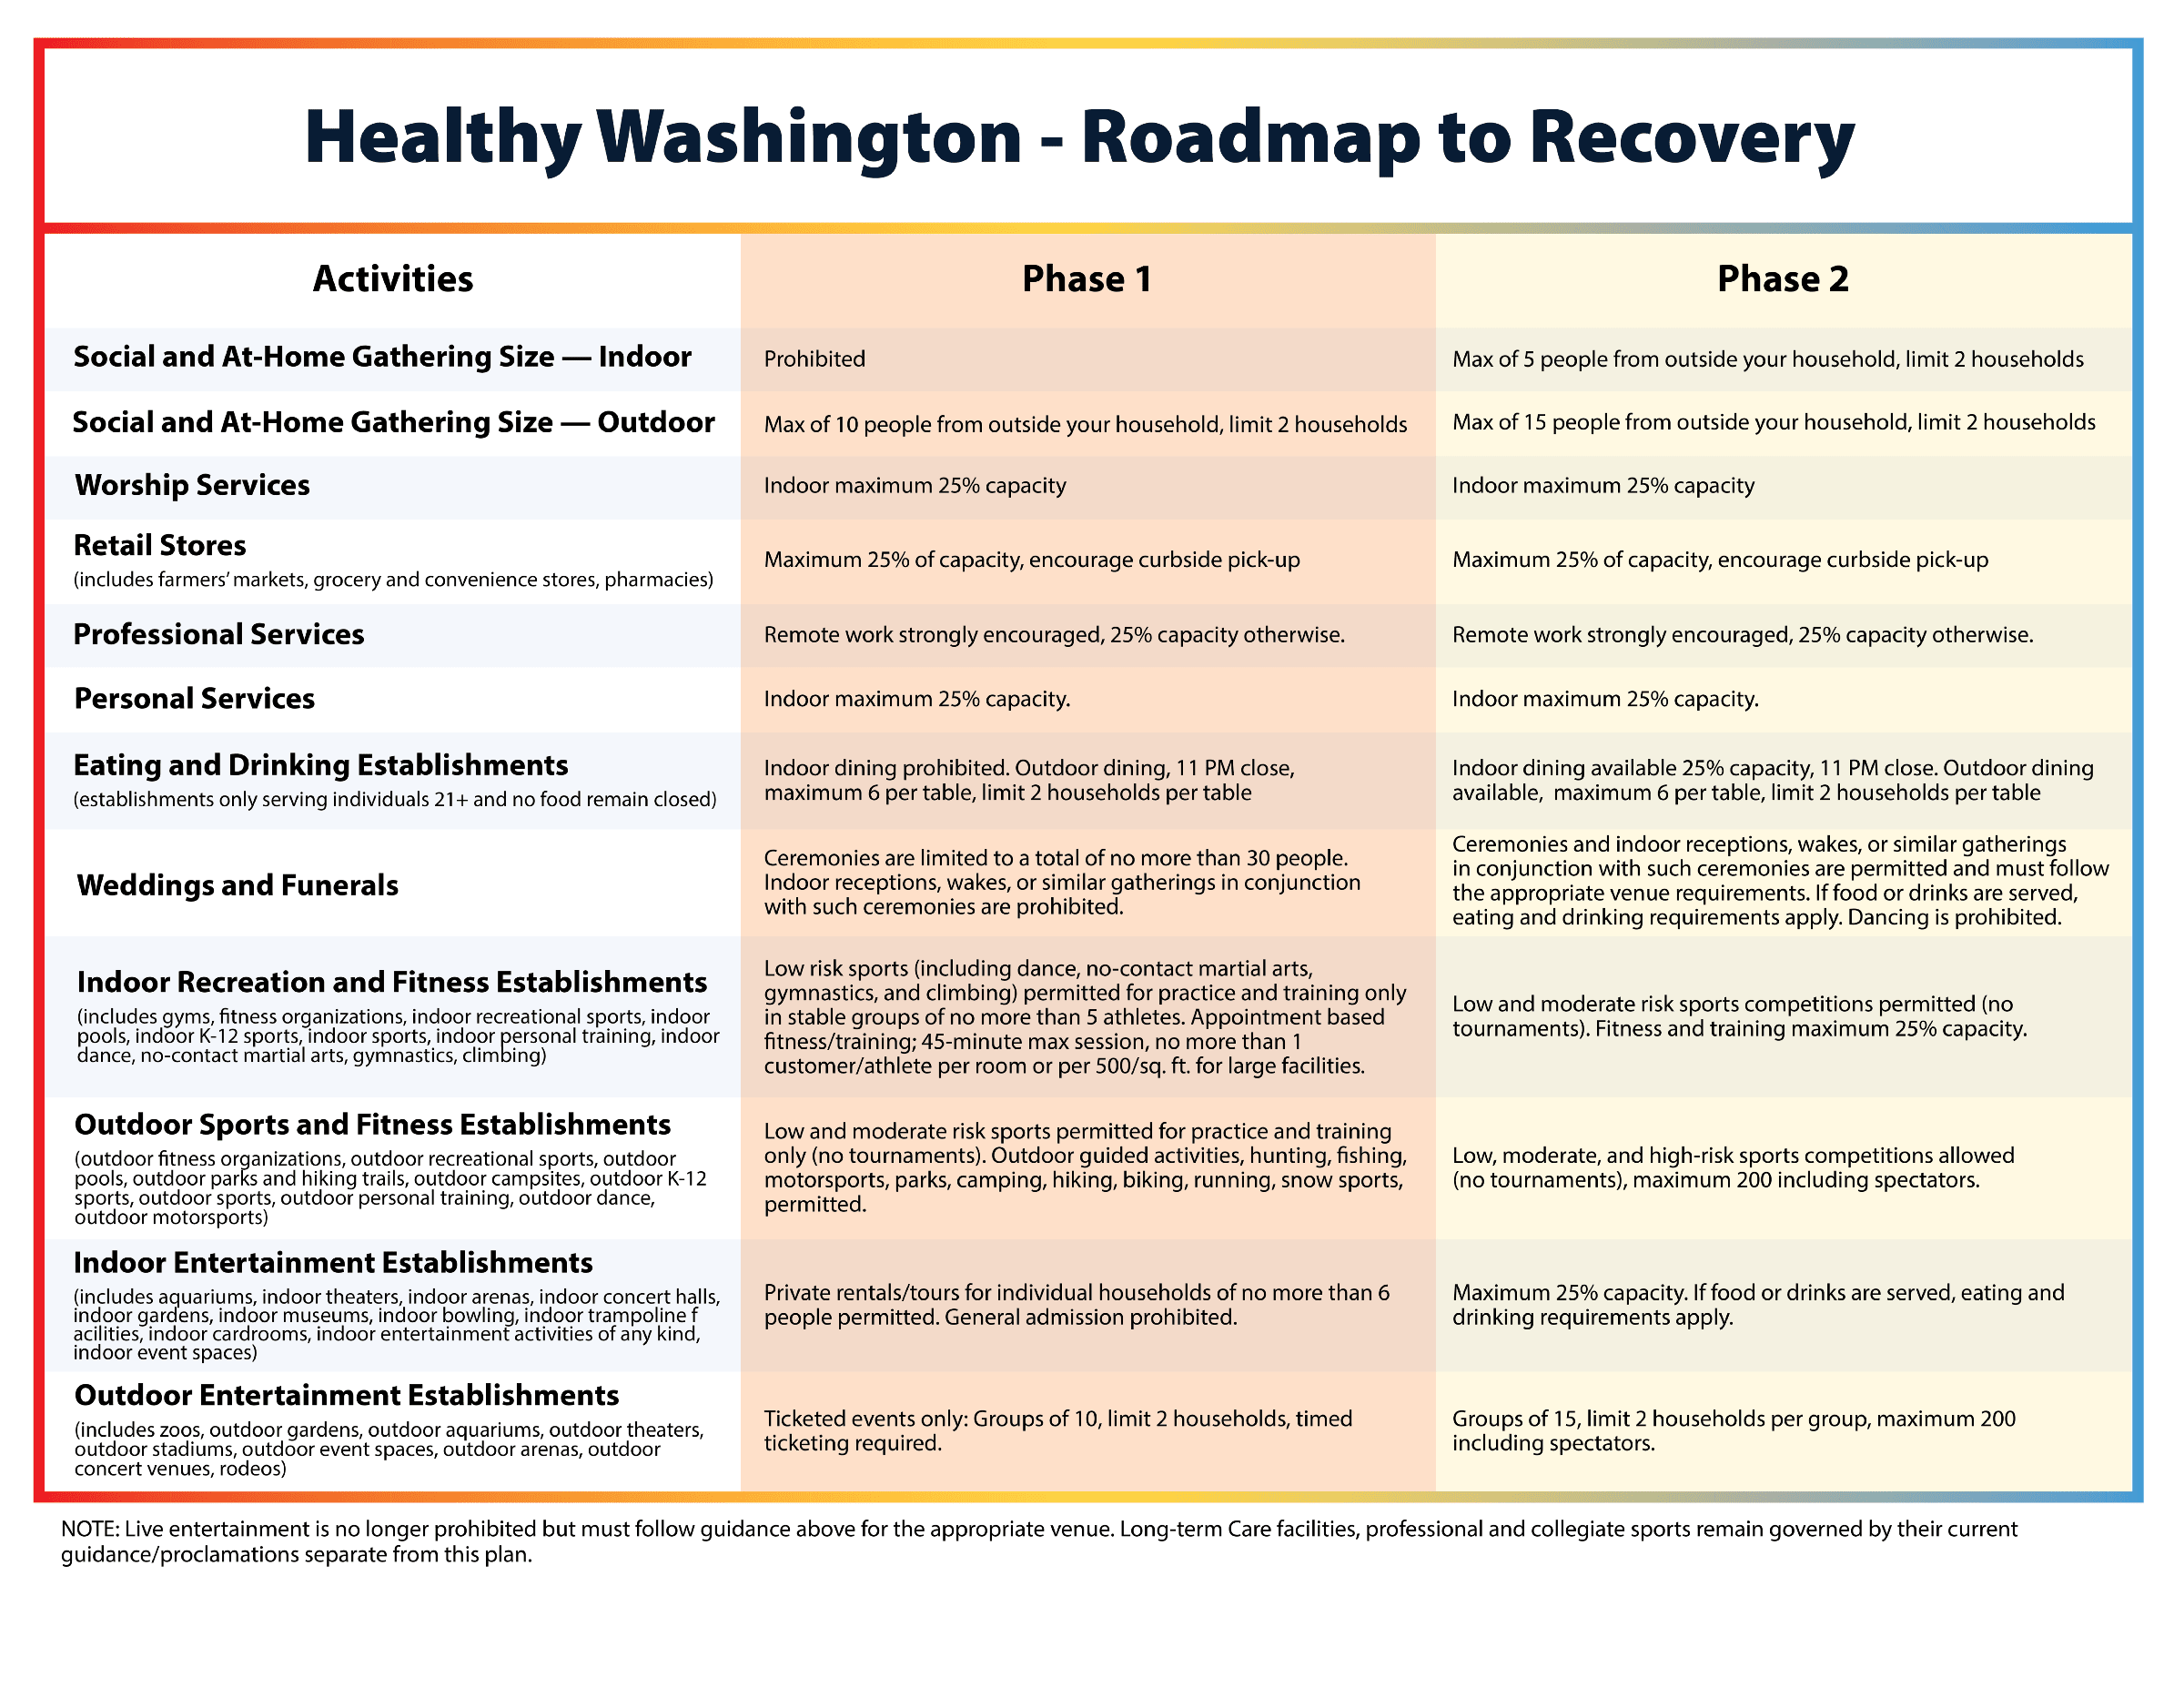 Allowed, limited and prohibited activities under Healthy Washington Phases 1 and 2 Opens in new window